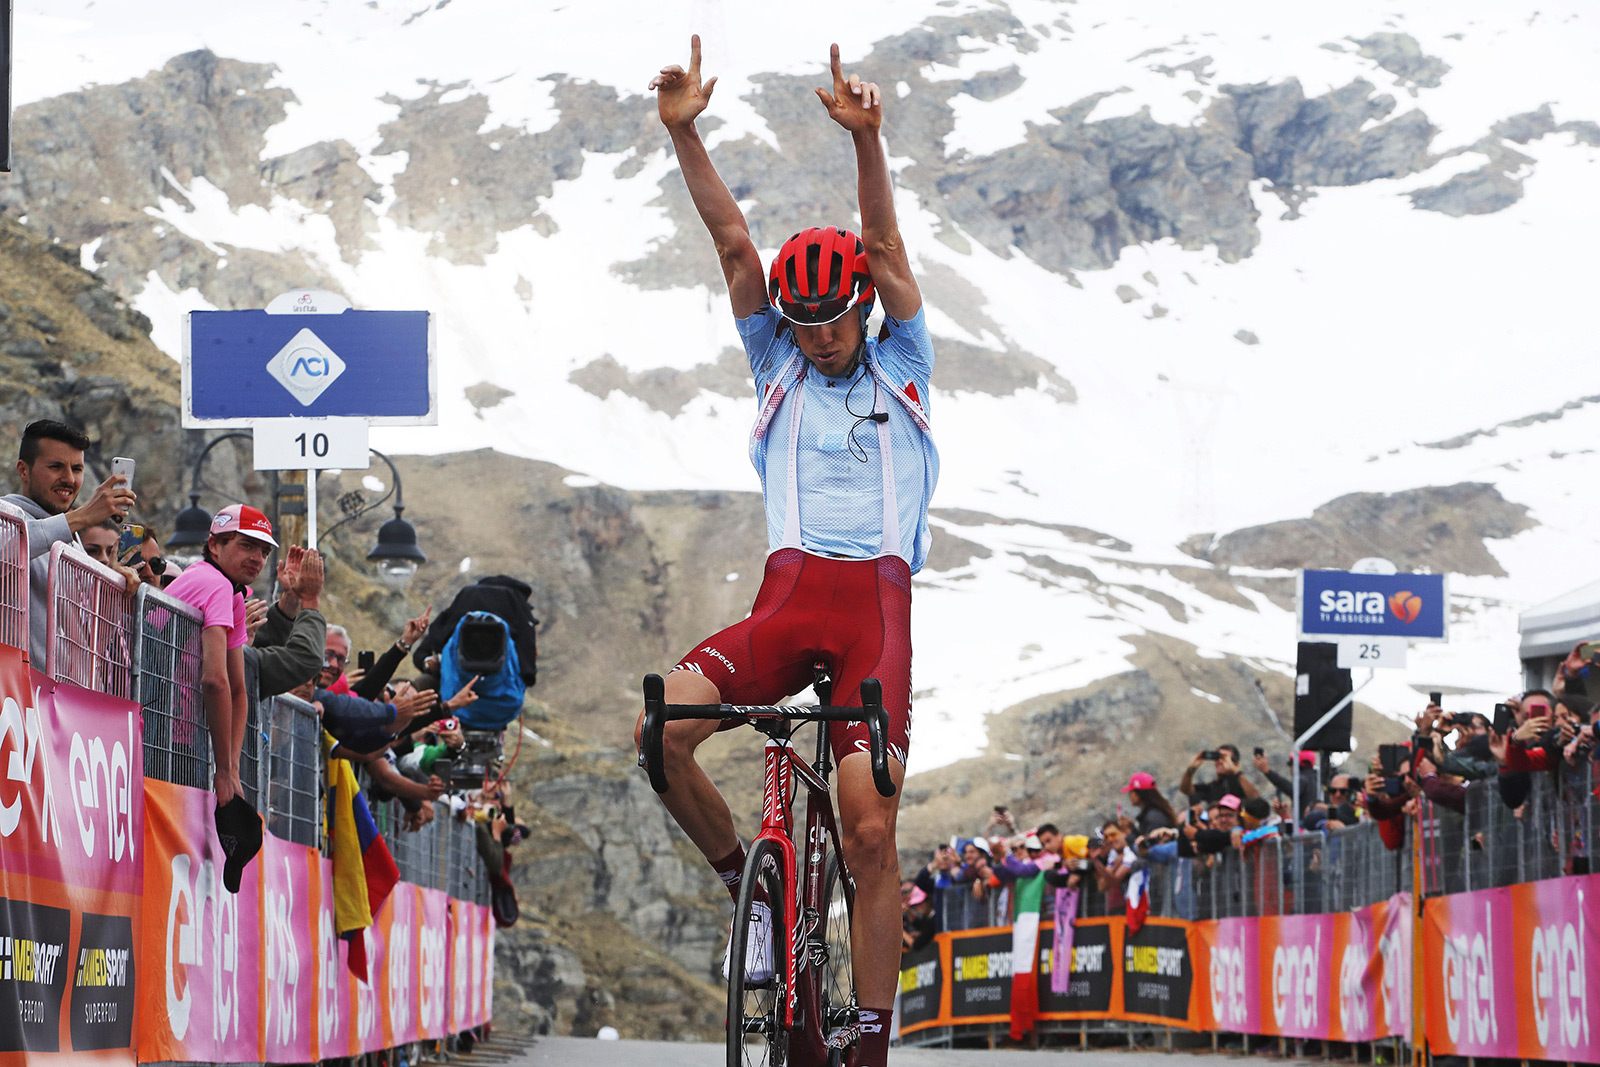 2019 Giro d'Italia Stage 13 Recap: The Big Mountains Shake Things Up 5